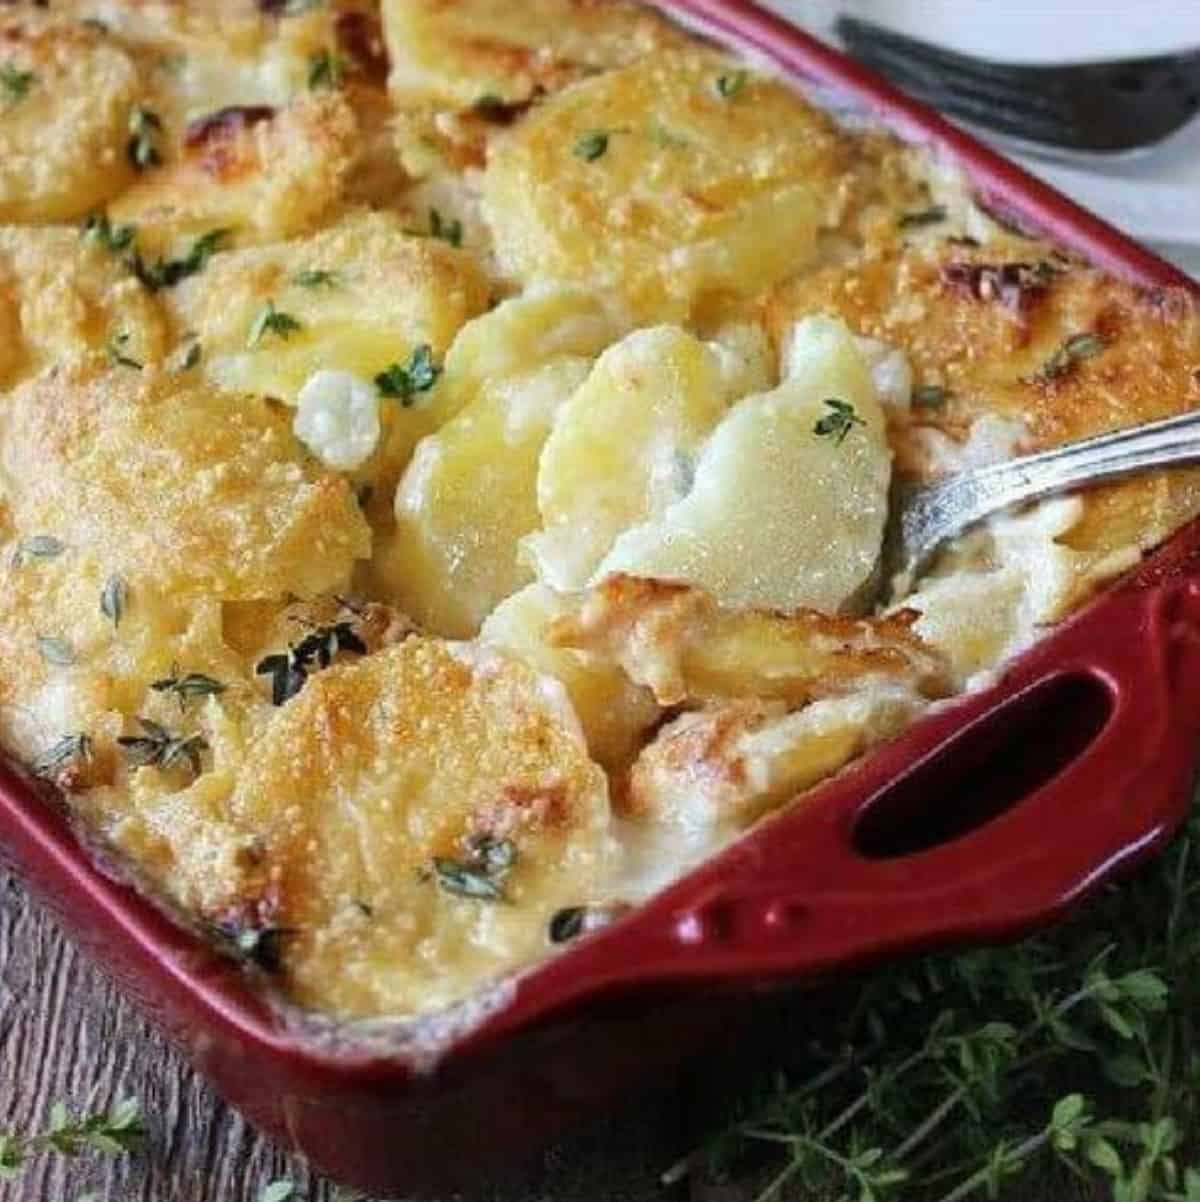 Tilted red casserole with golden brown baked scalloped potatoes.